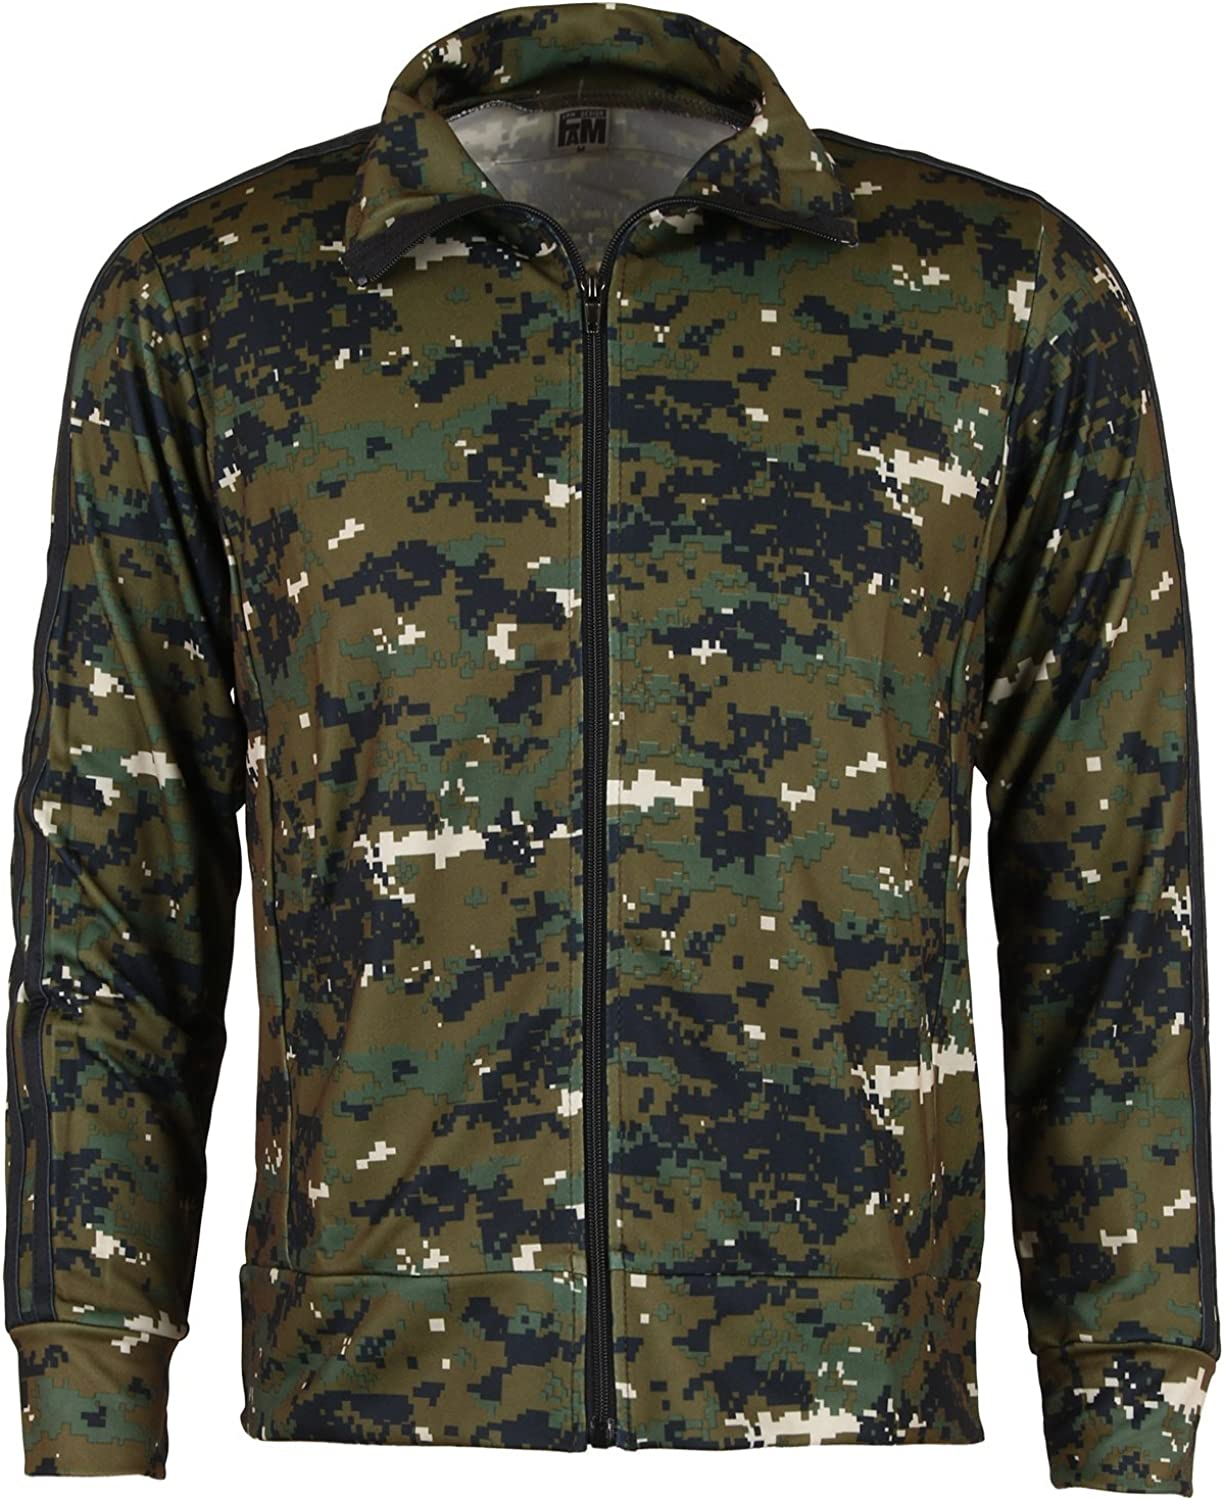 Ililily Military Army Pattern Jogging Training Fitness Warmup 2pc Track Suit